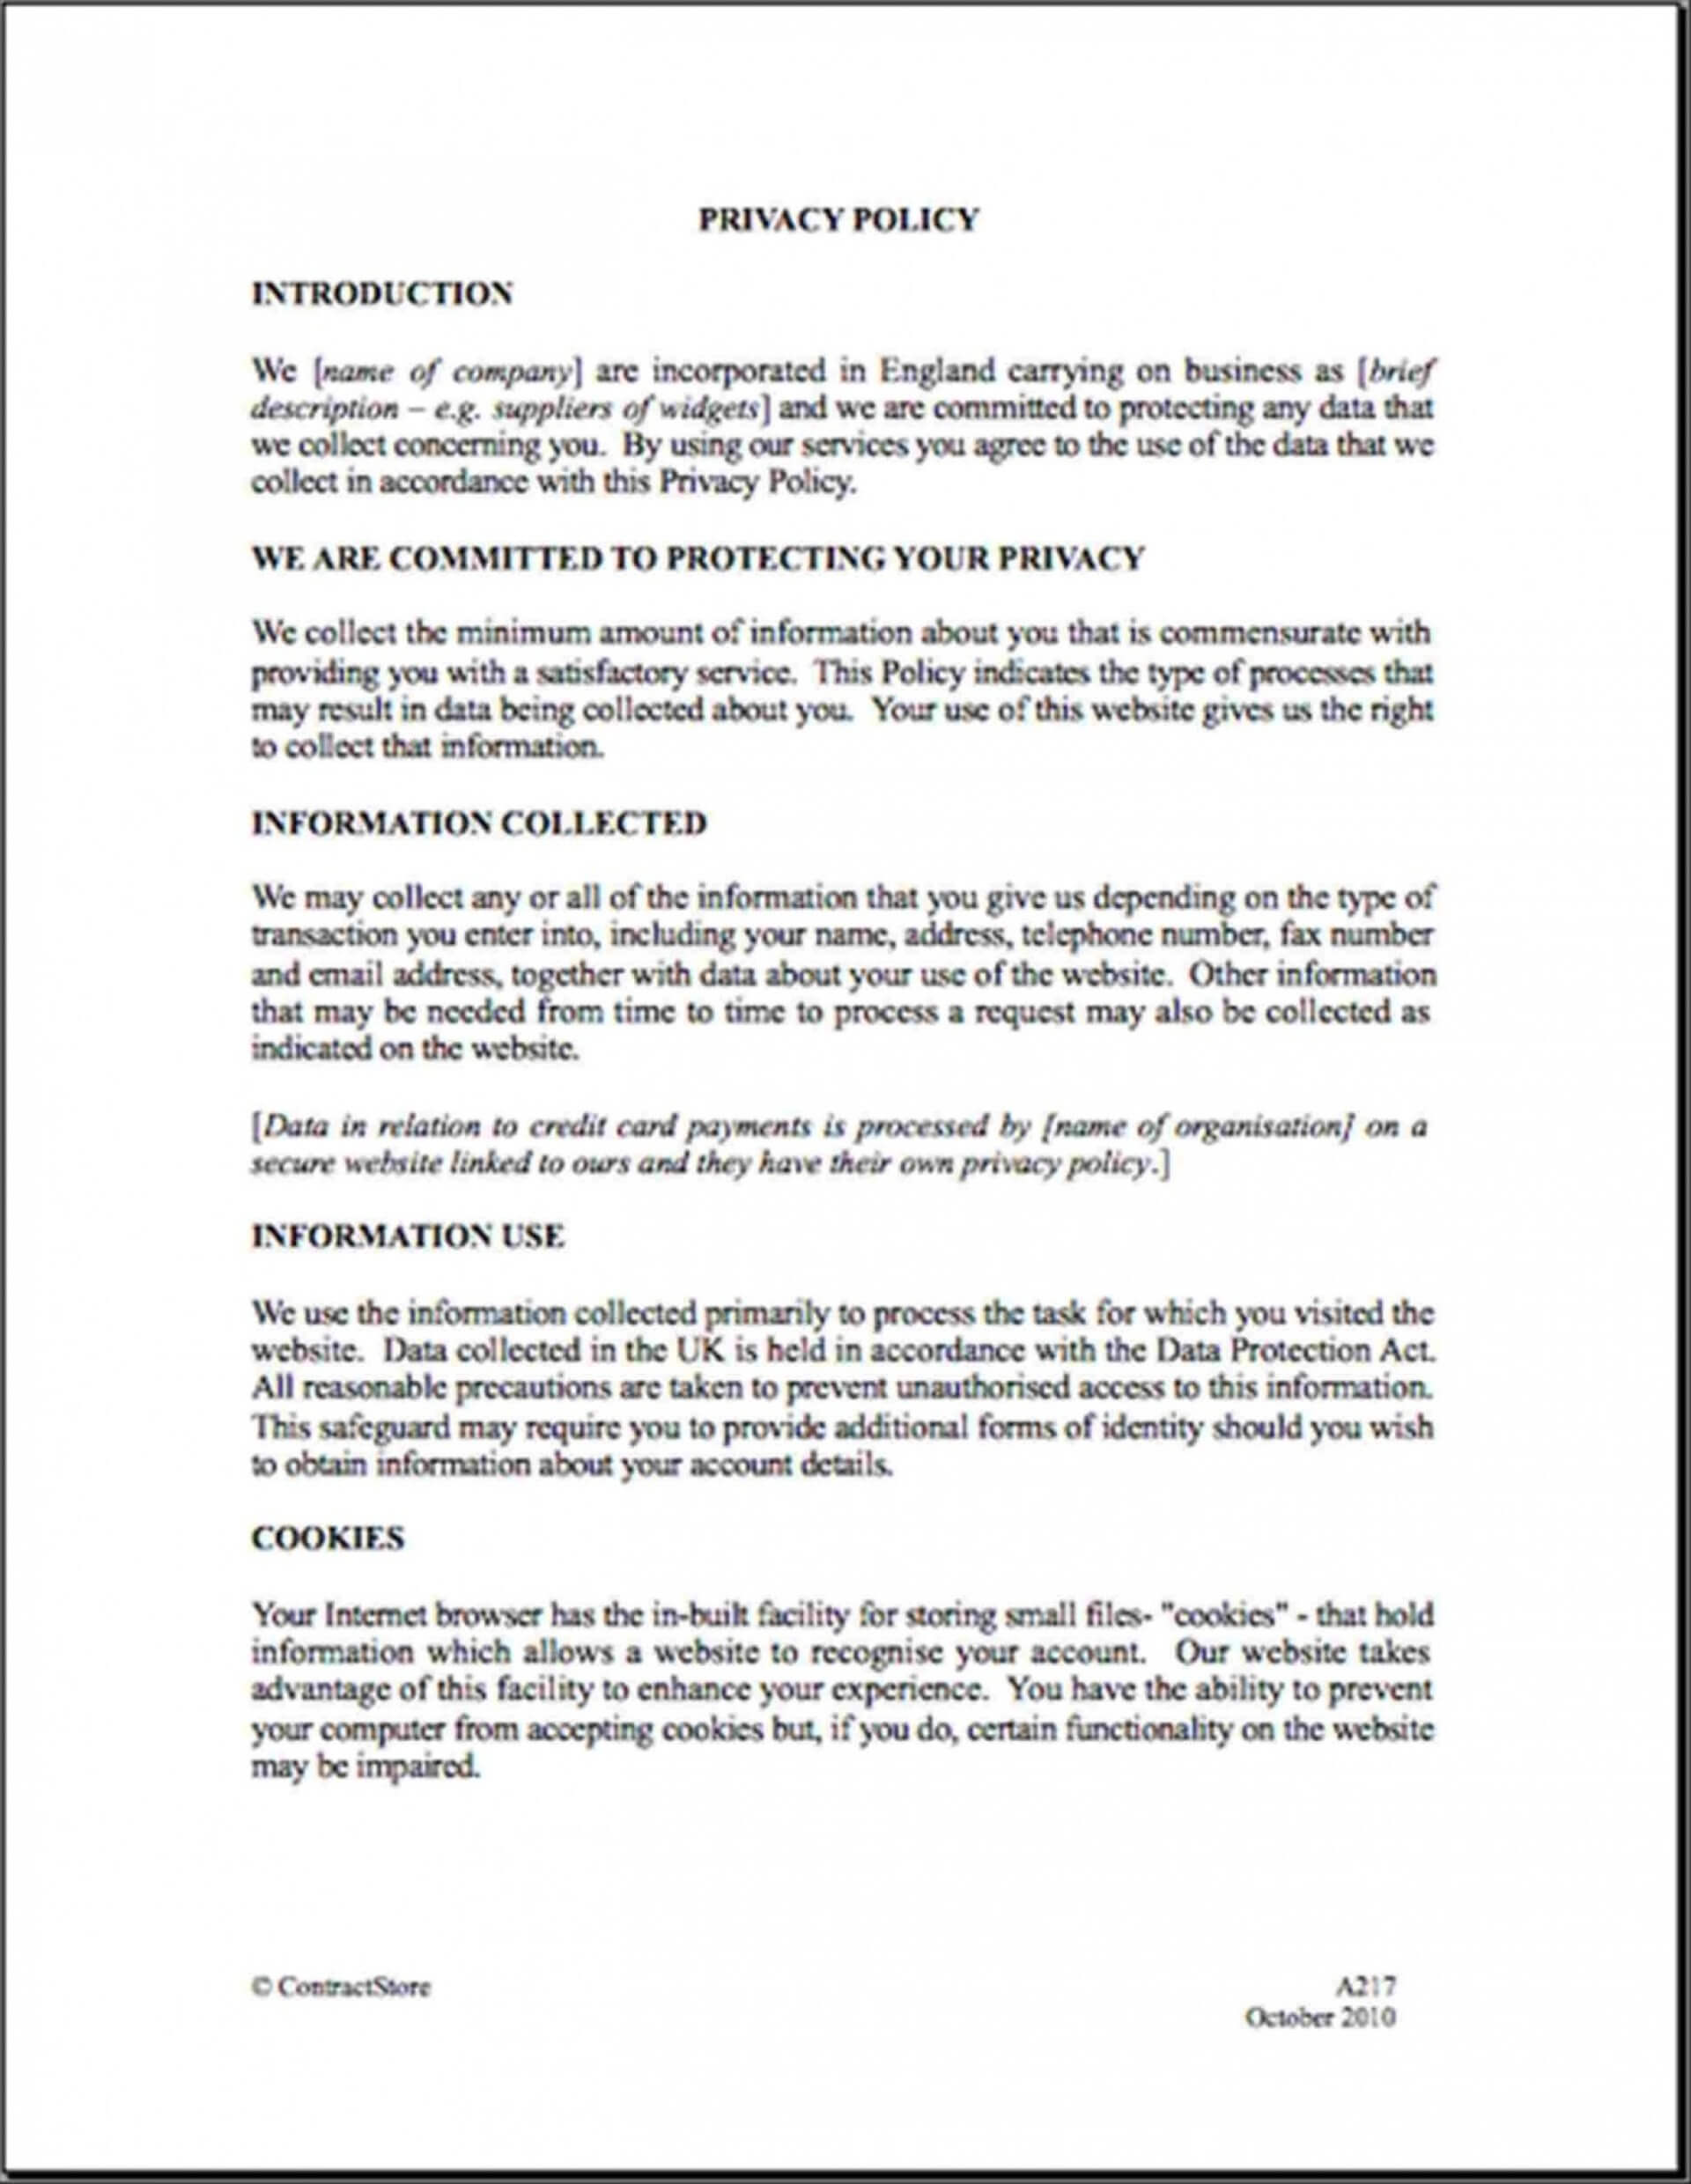 001 Company Privacy Policy Template Uk Ideas Regarding Credit Card Privacy Policy Template